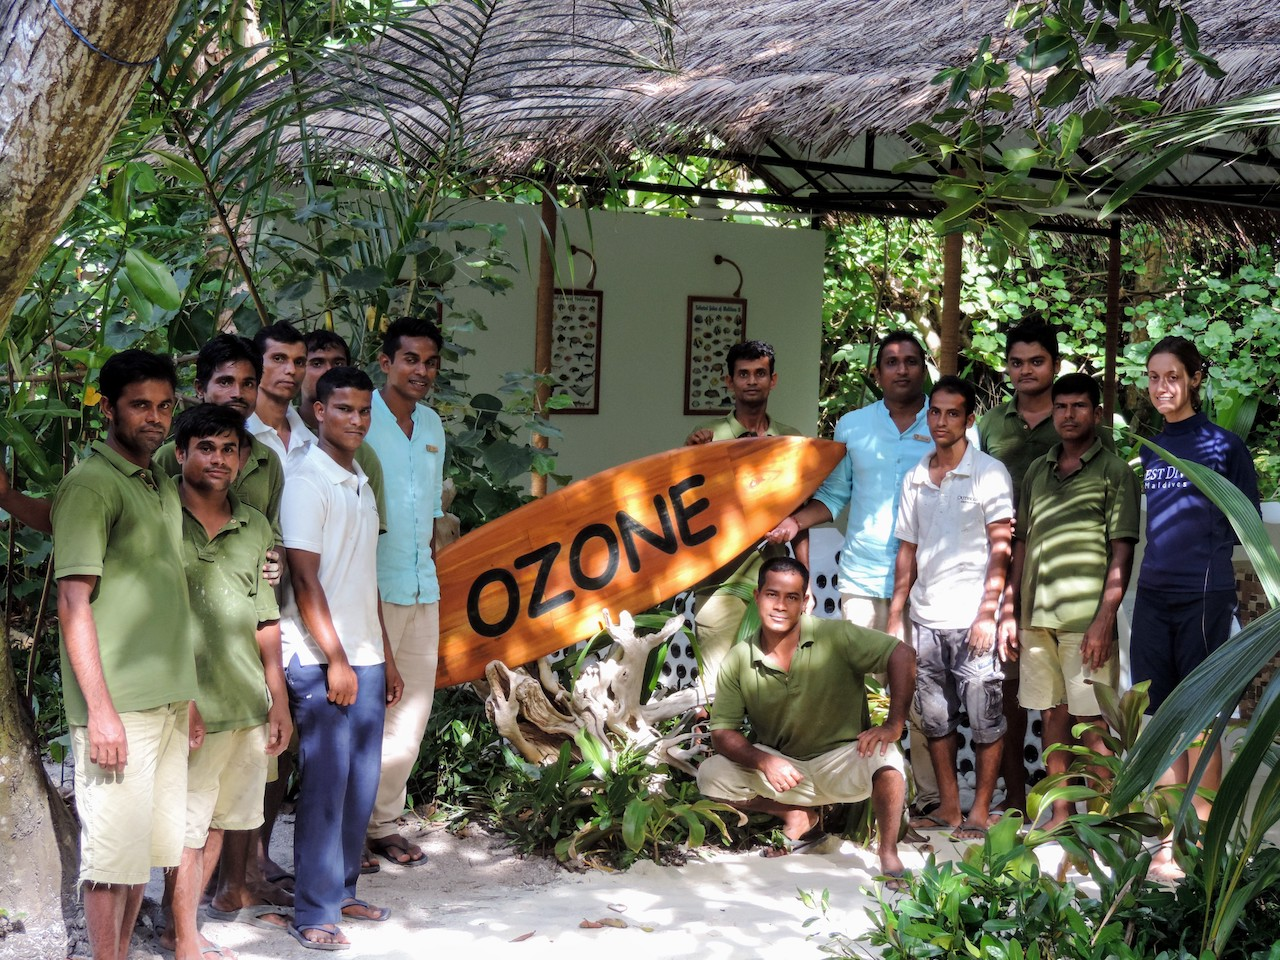 The sustainable OZONE Hut – made for presentations and talks on marine life at the Outrigger